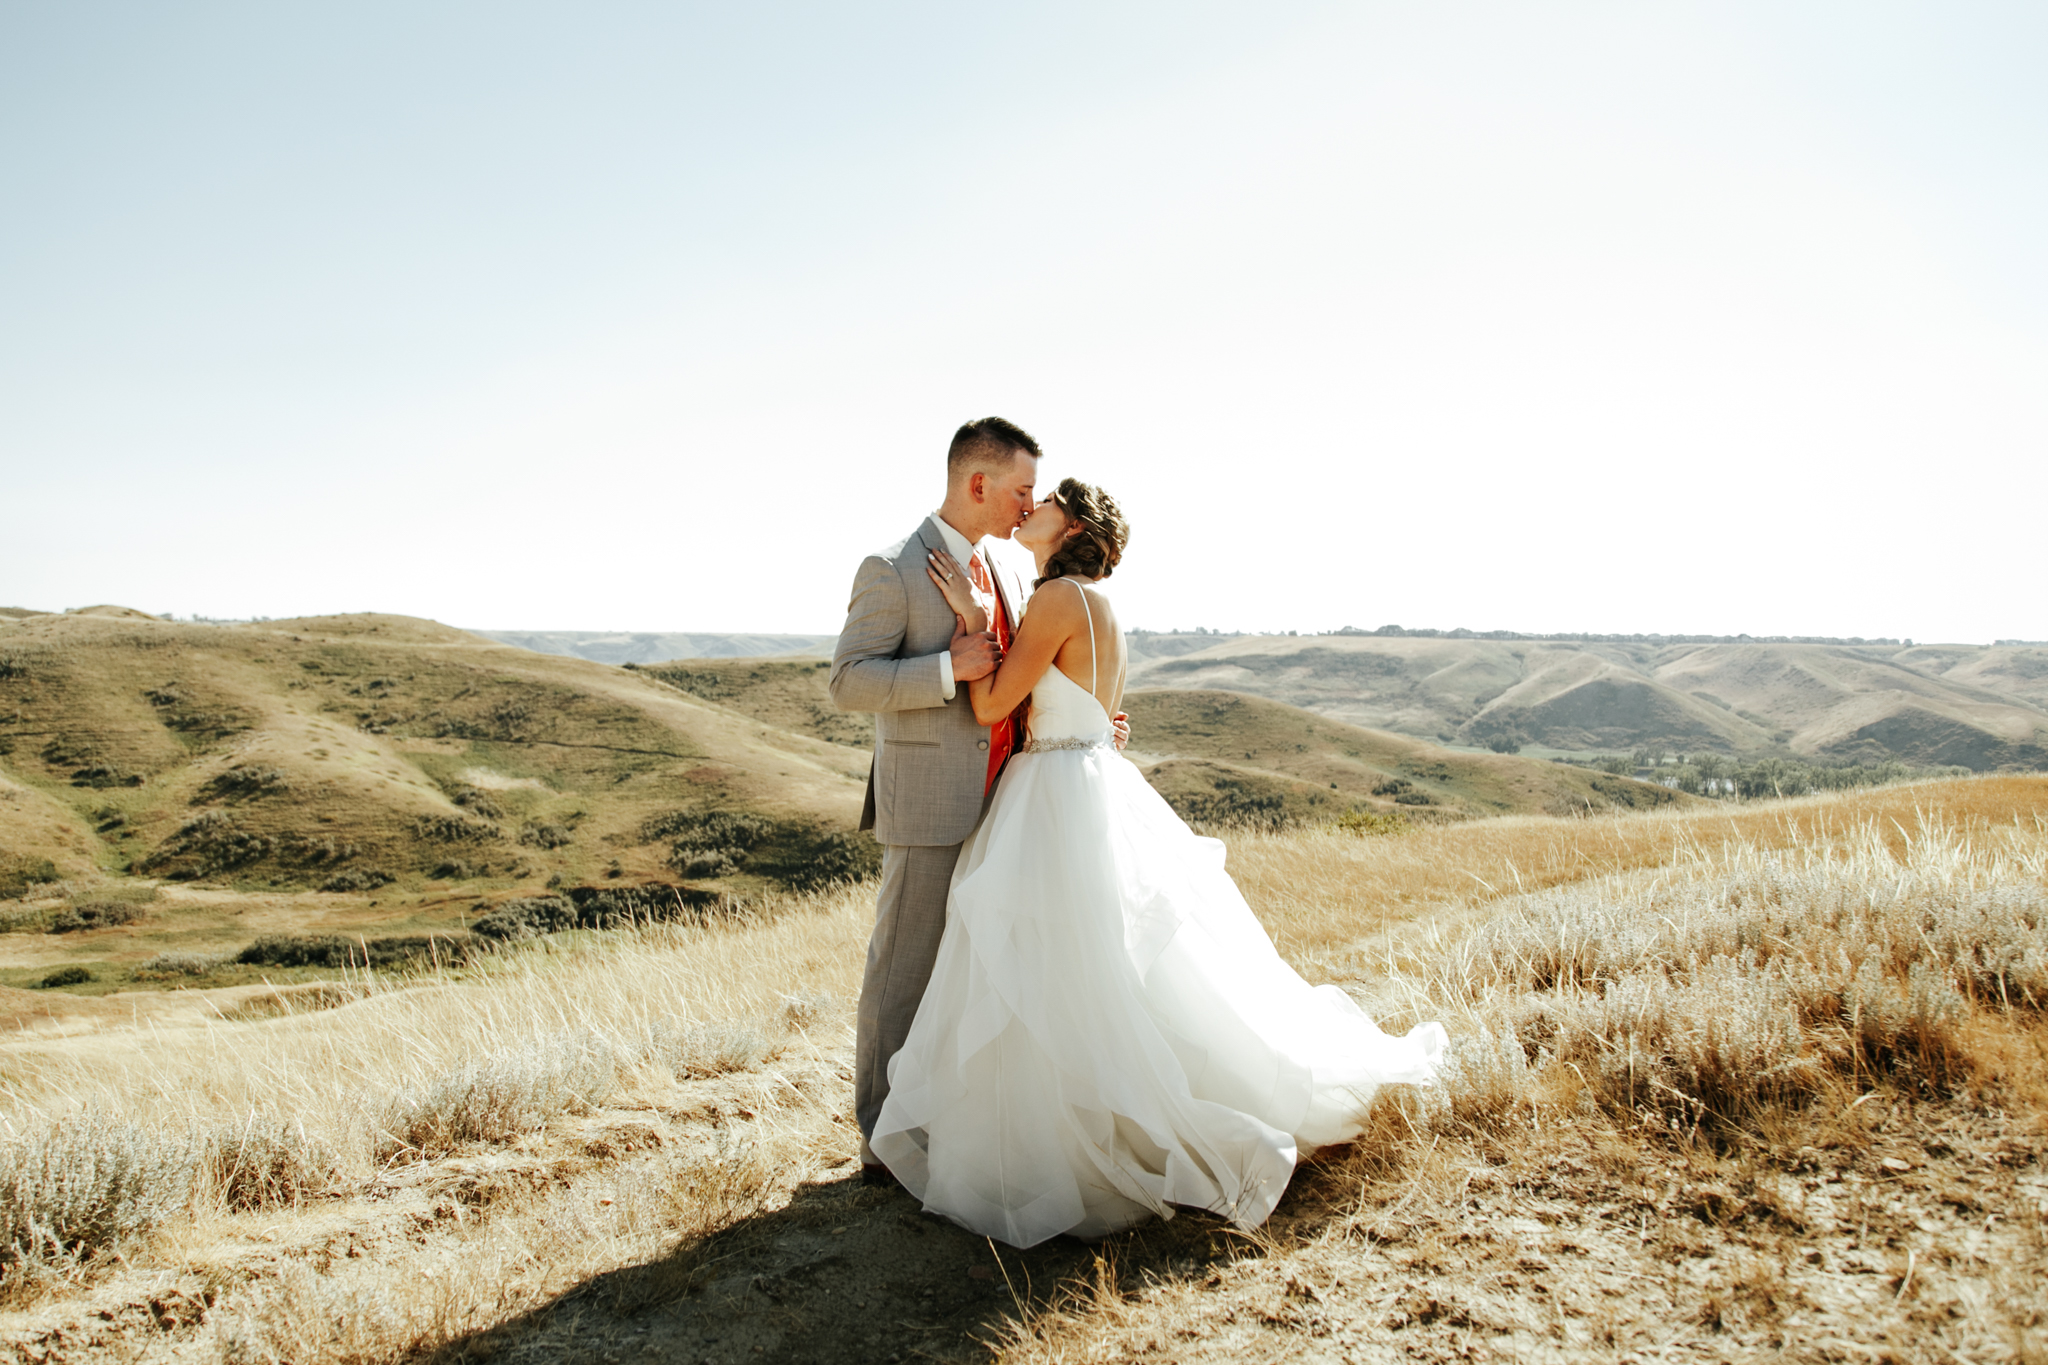 lethbridge-wedding-photography-love-and-be-loved-photographer-sean-sharla-henderson-lake-wedding-image-picture-photo-110.jpg